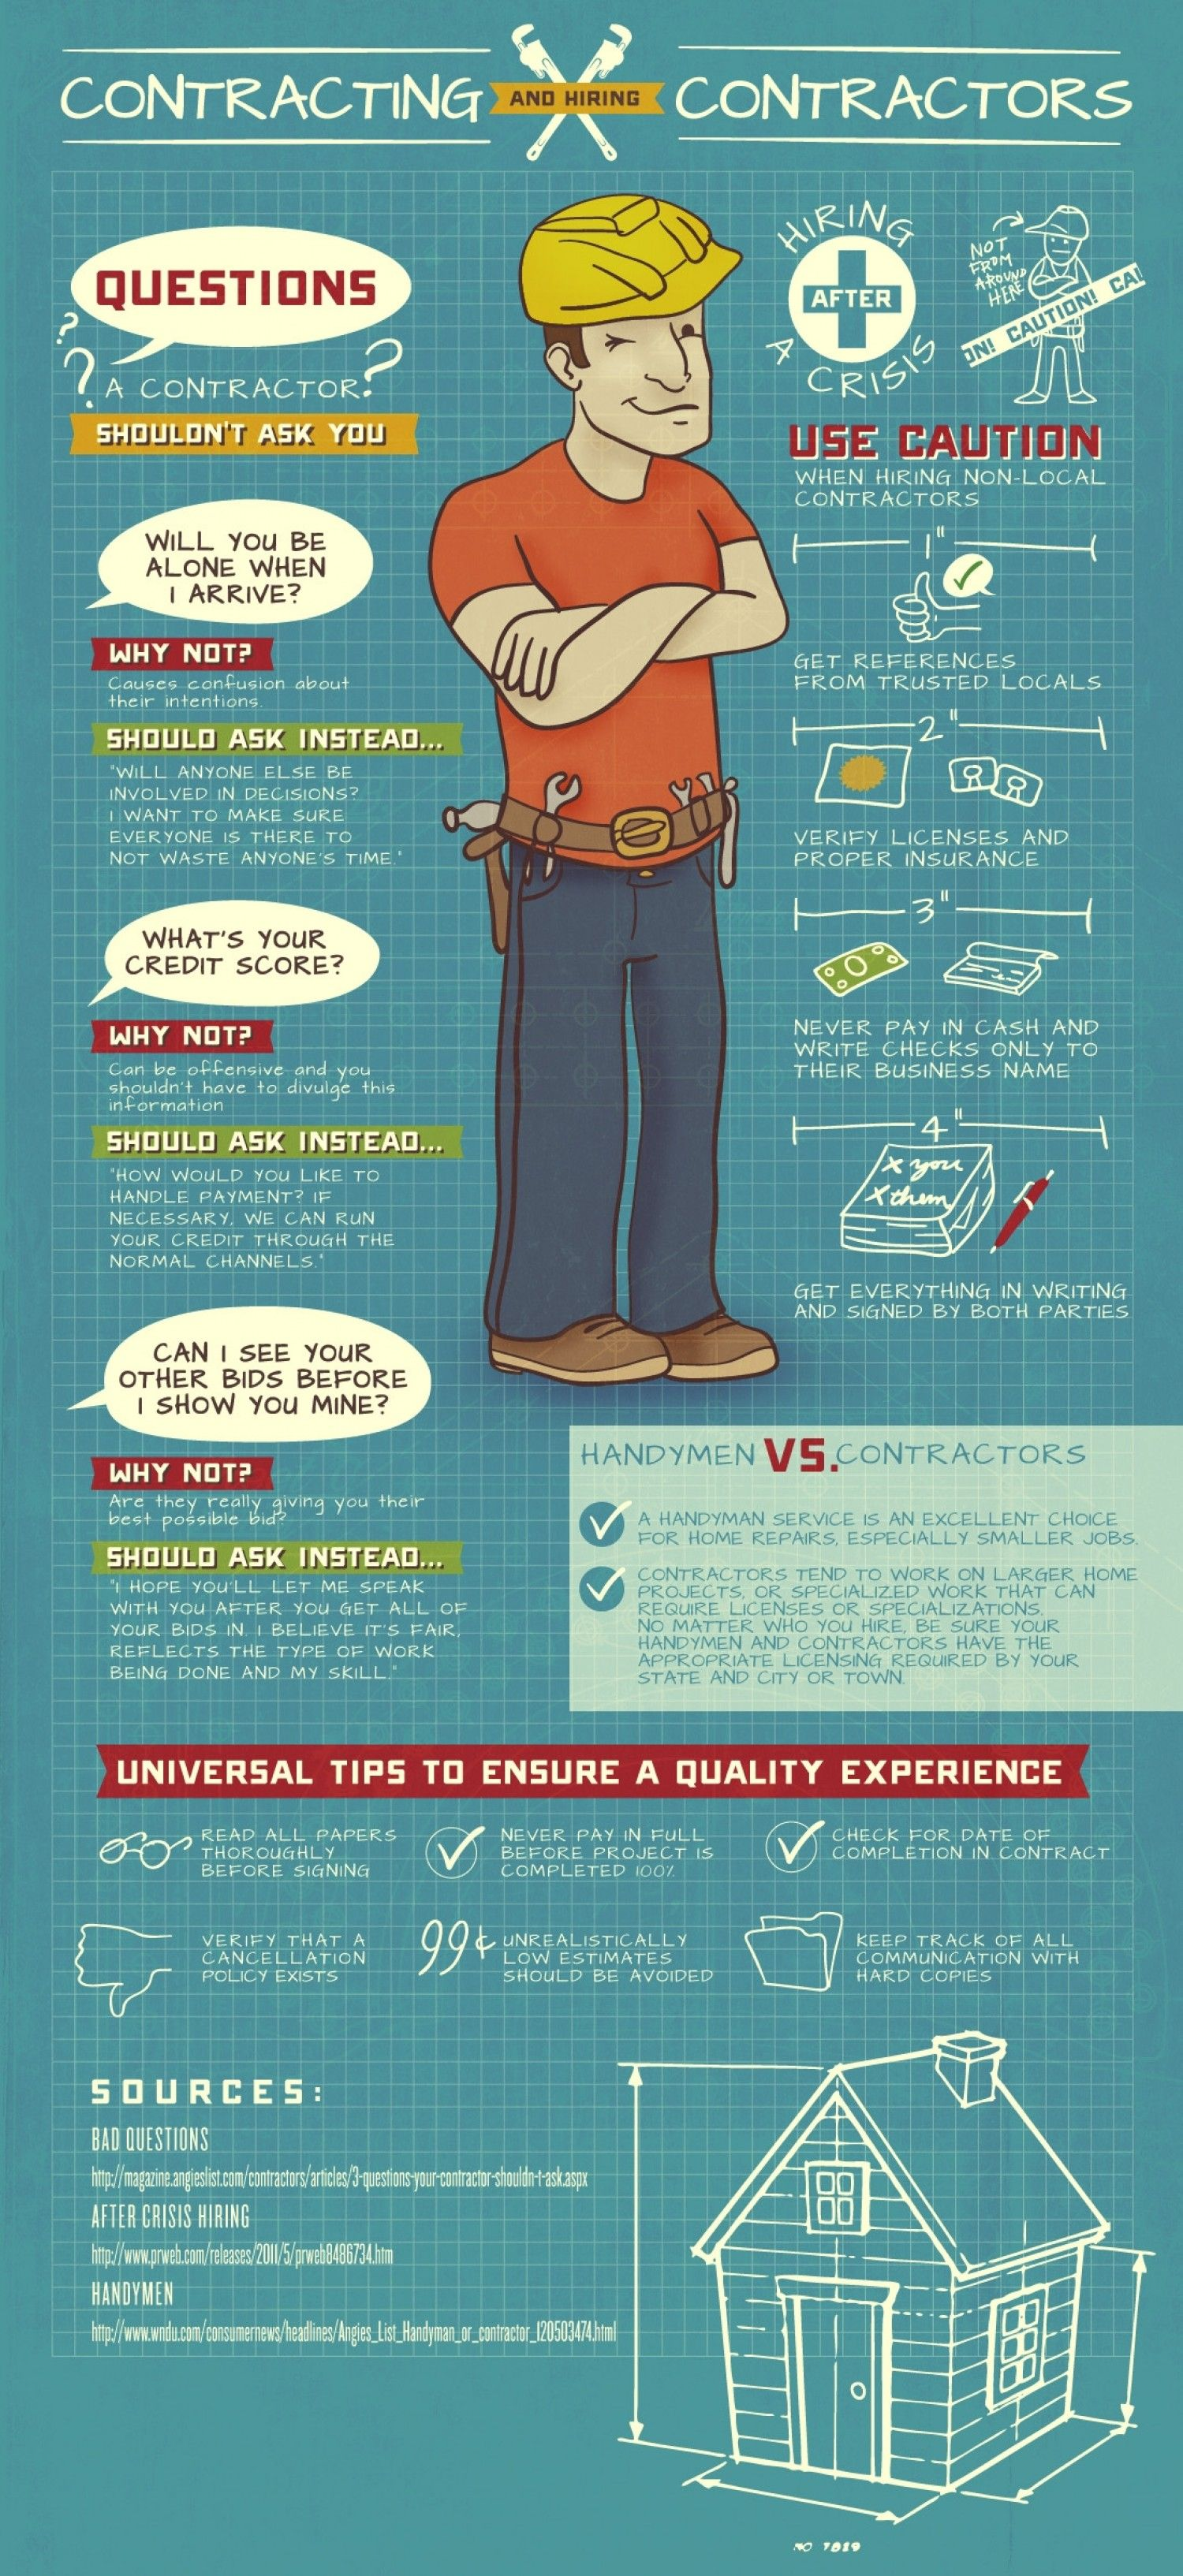 Contracting Contractors Infographic. For information on